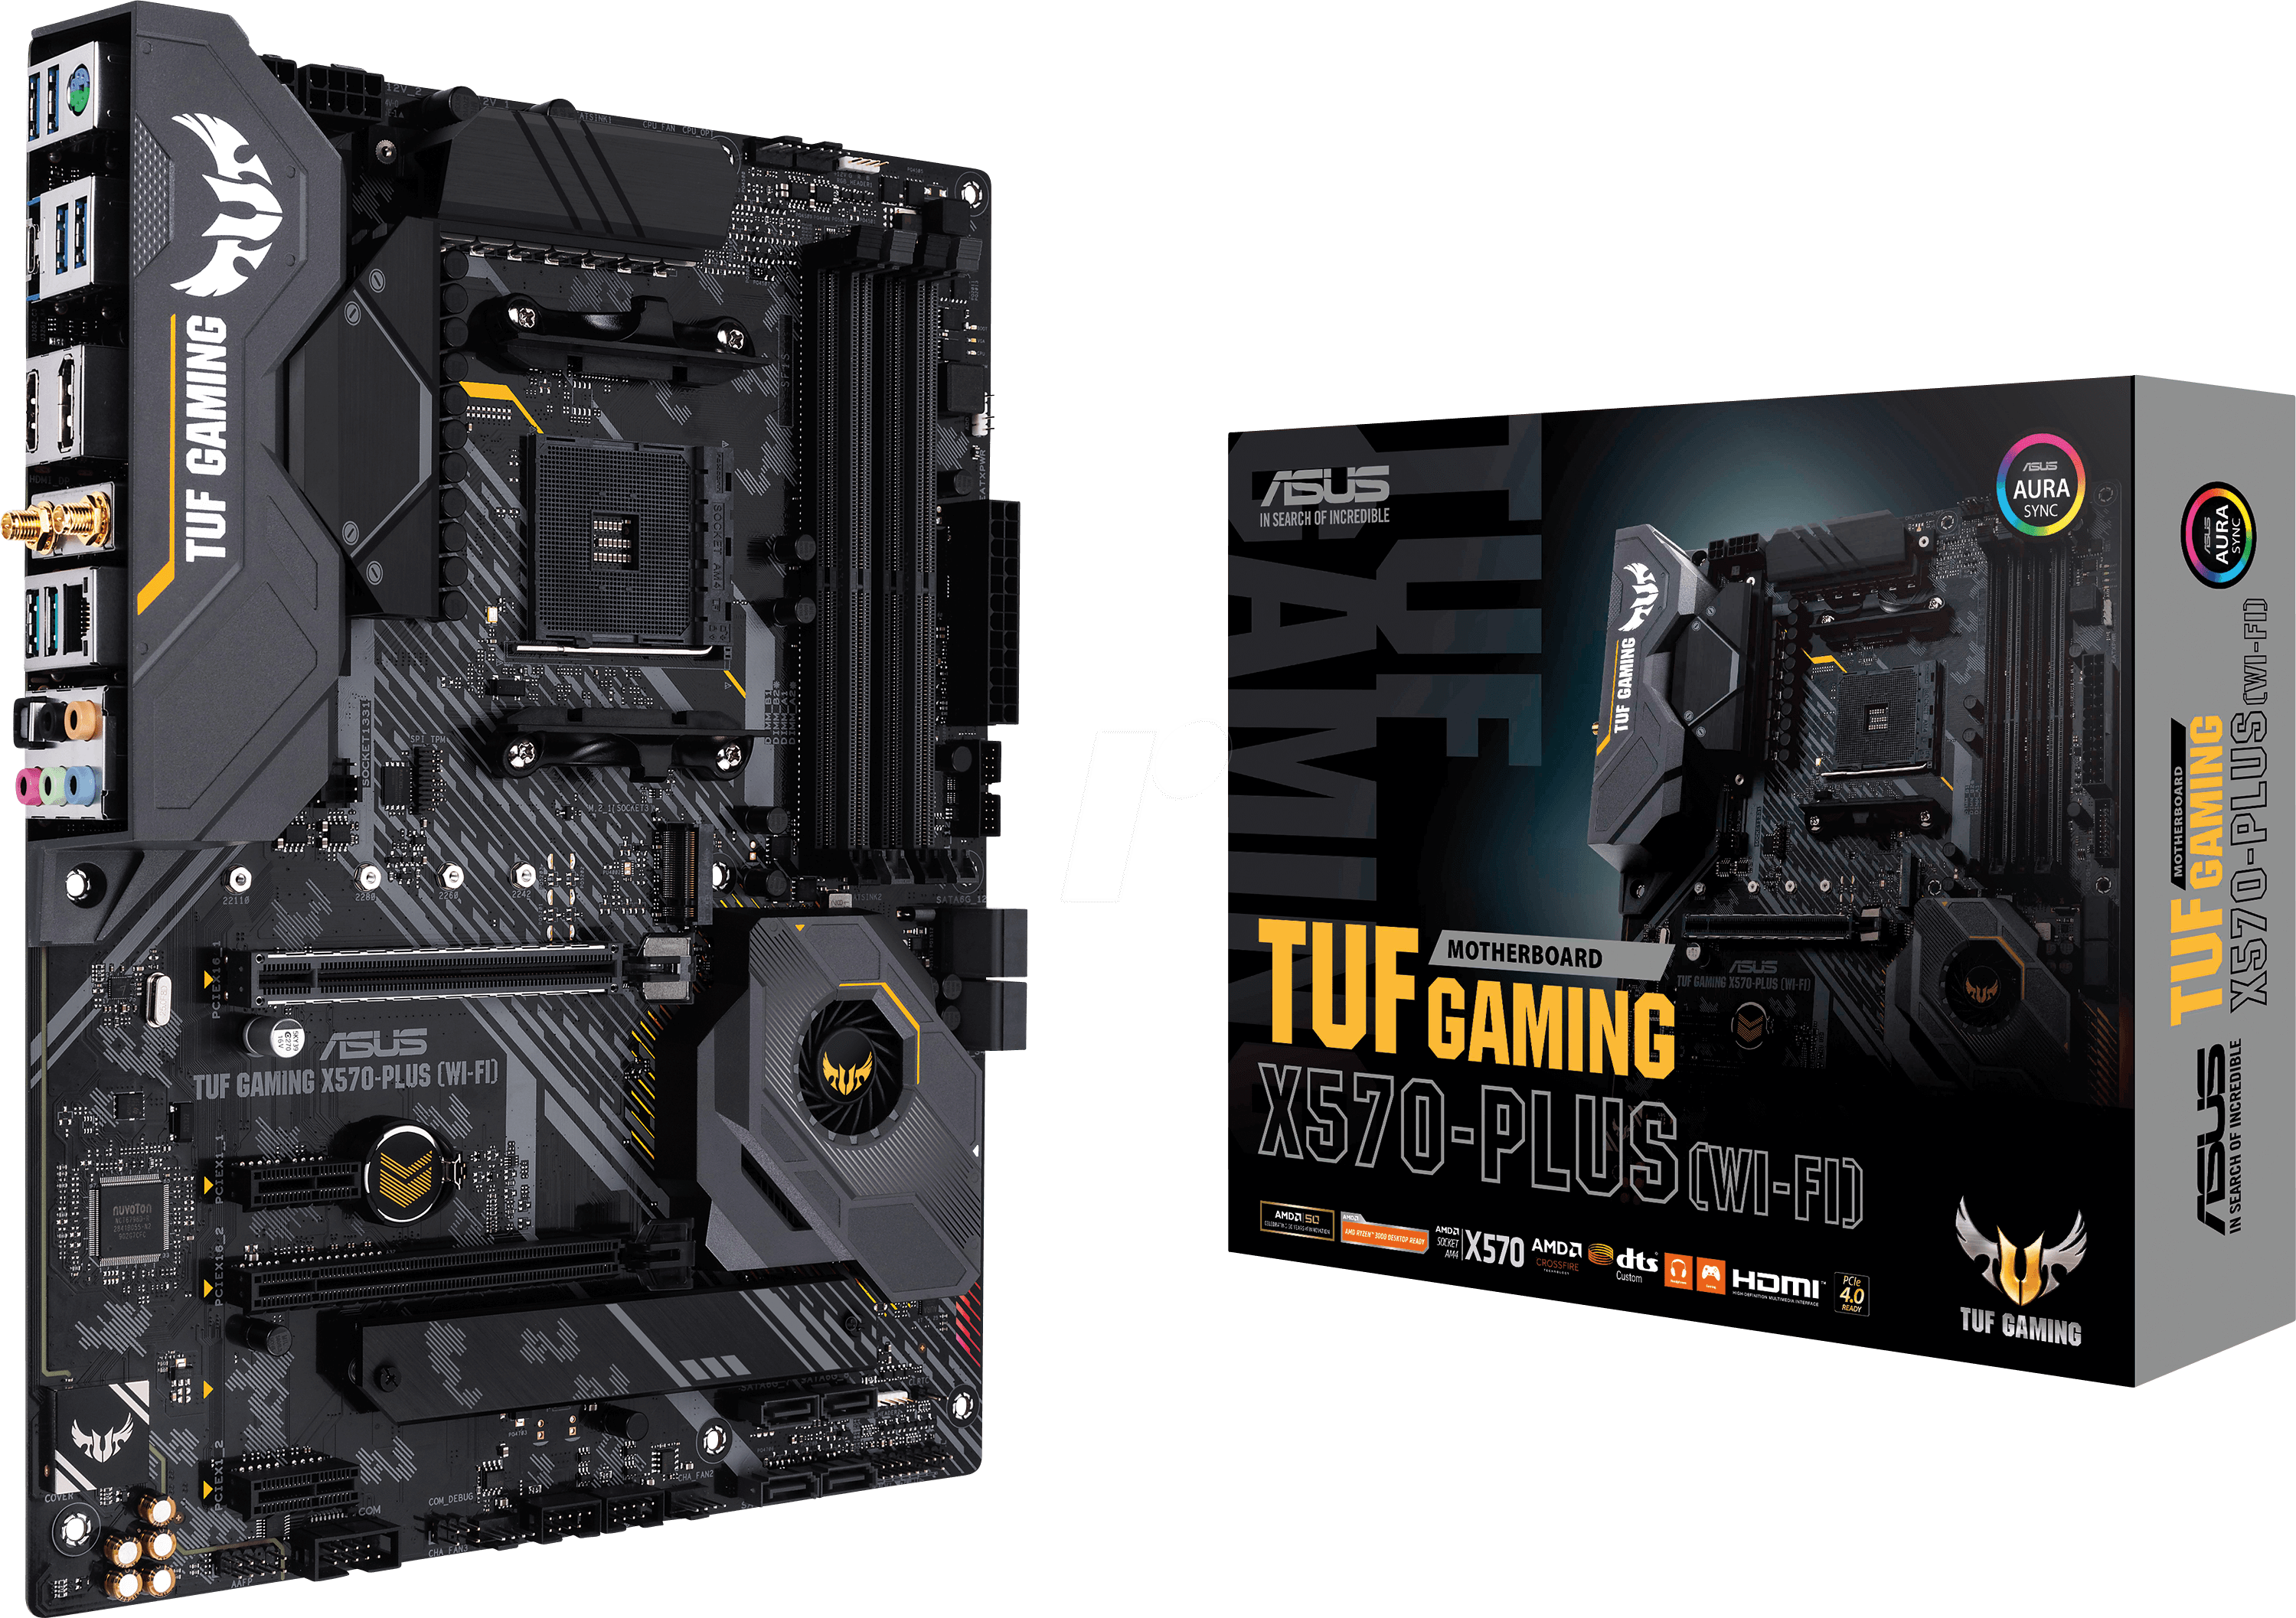 ASUS 90MB1170 - ASUS TUF Gaming X570-Plus (WI-FI) (AM4)